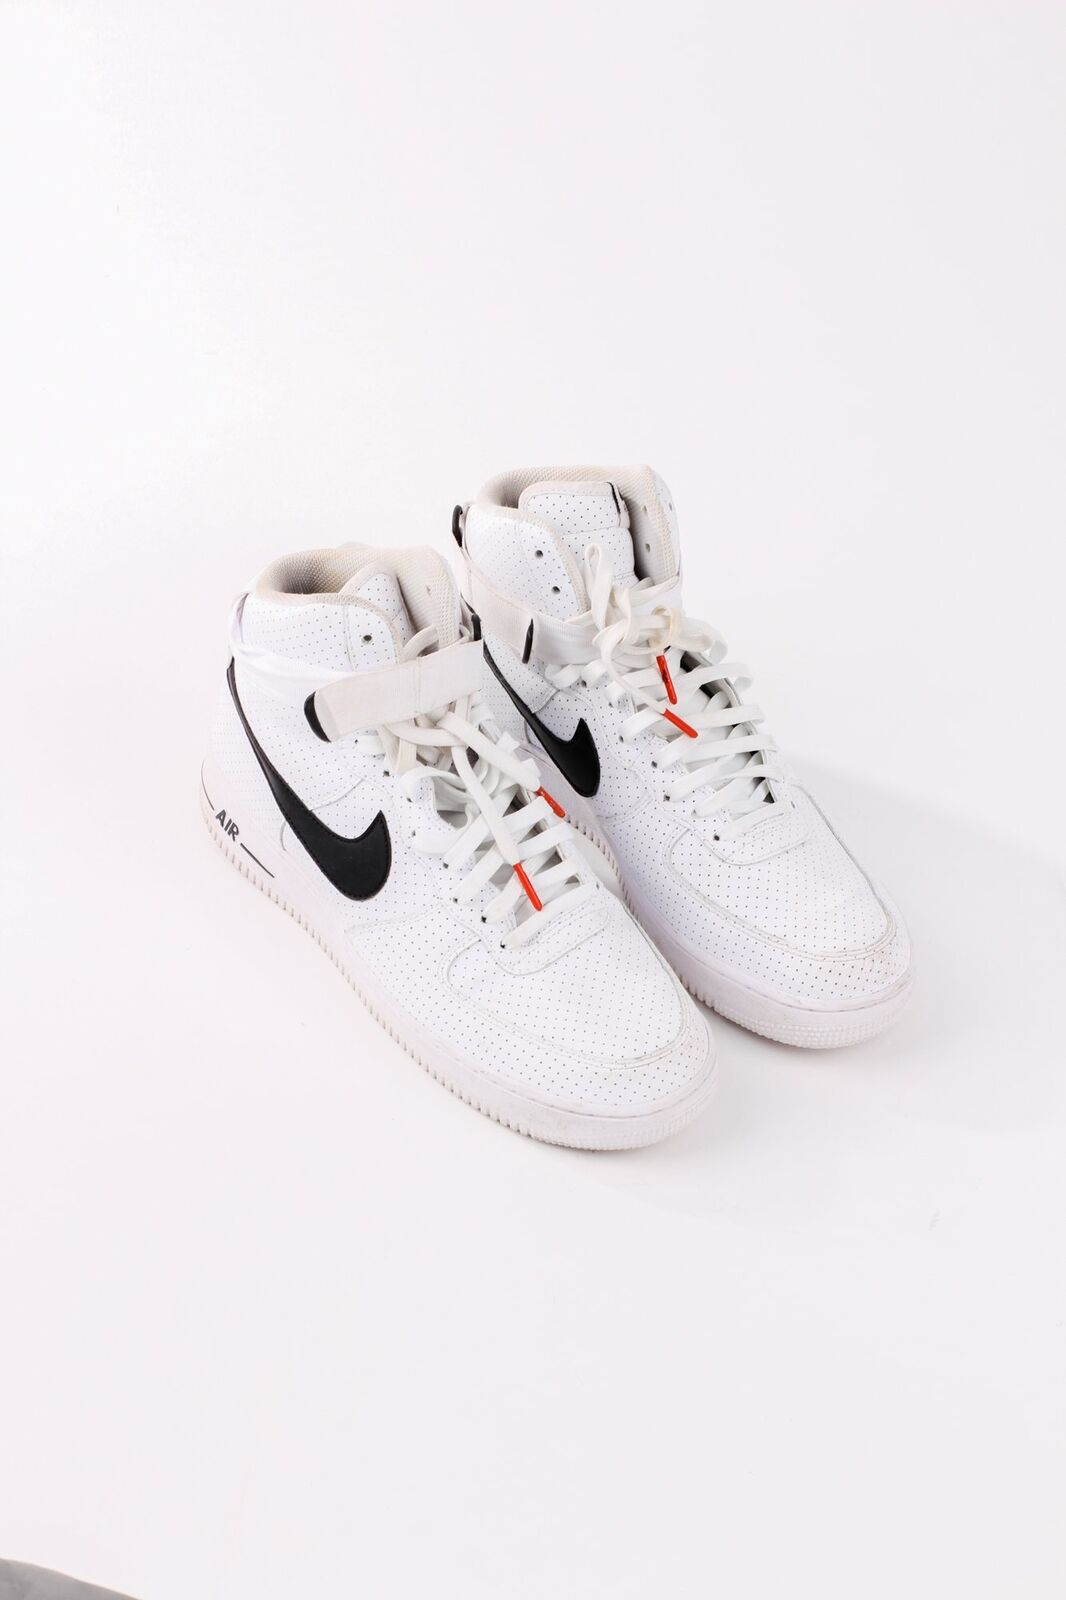 Nike Air Force 1 utilitaire blanc UK 10